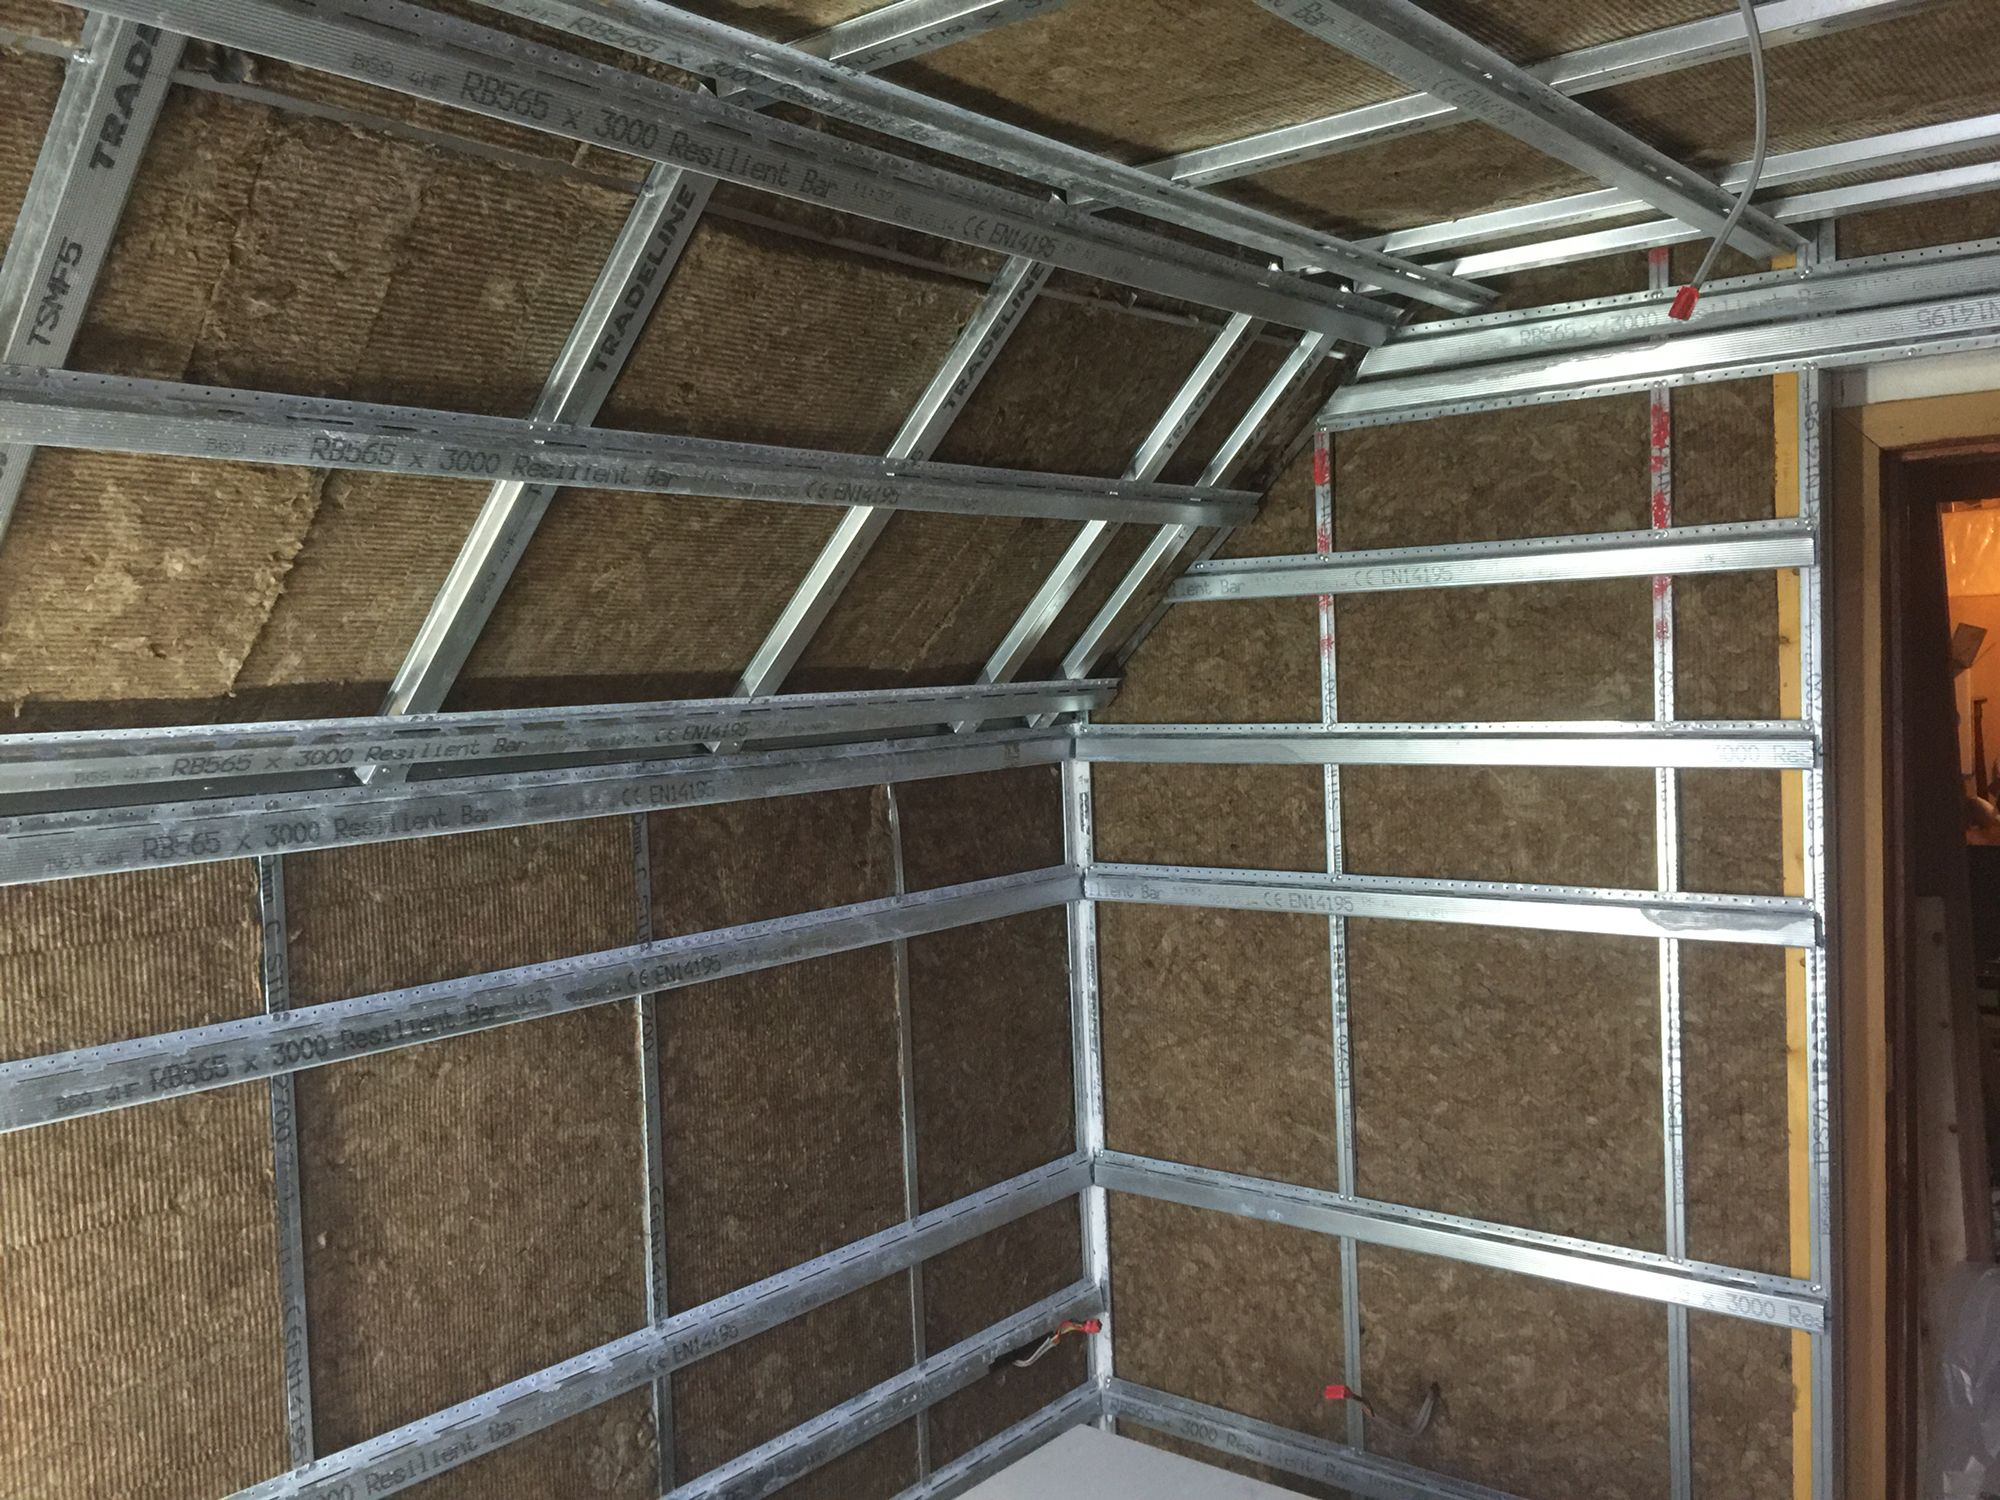 Room within a room Soundproofing framing Showing acoustic insulation ...